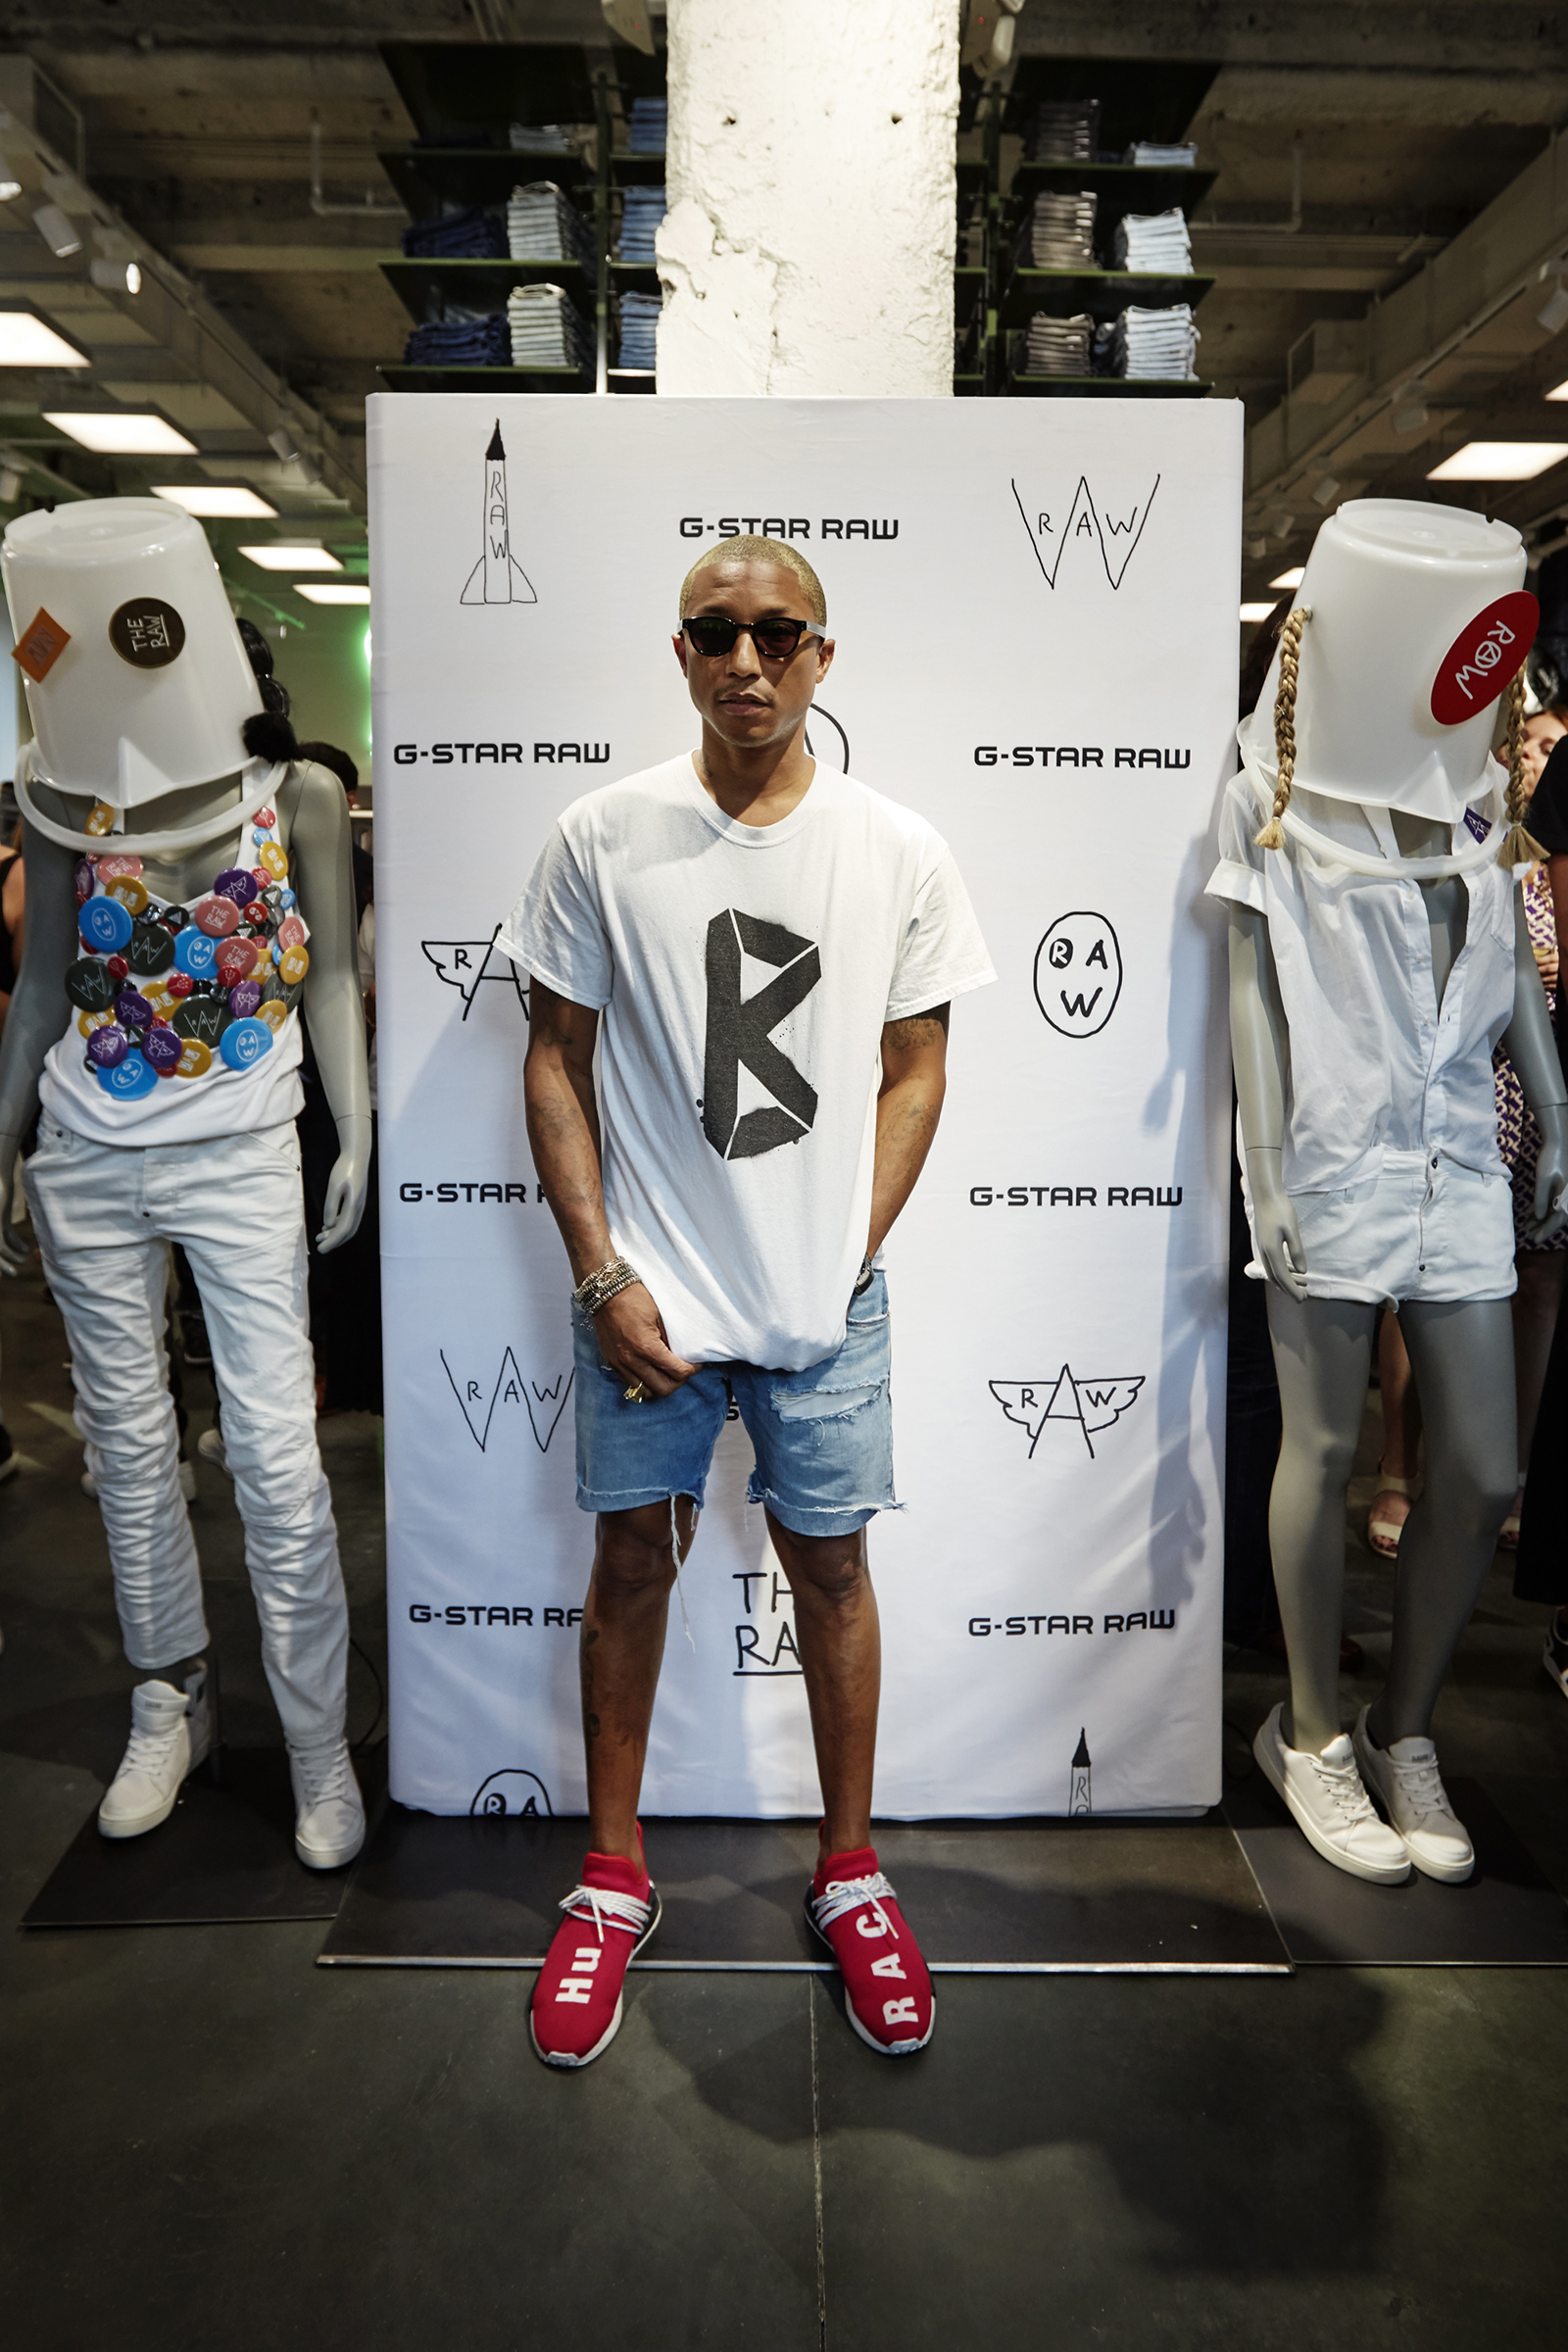 Pharrell Williams, G-Star co-owner and 'head of imagination'.